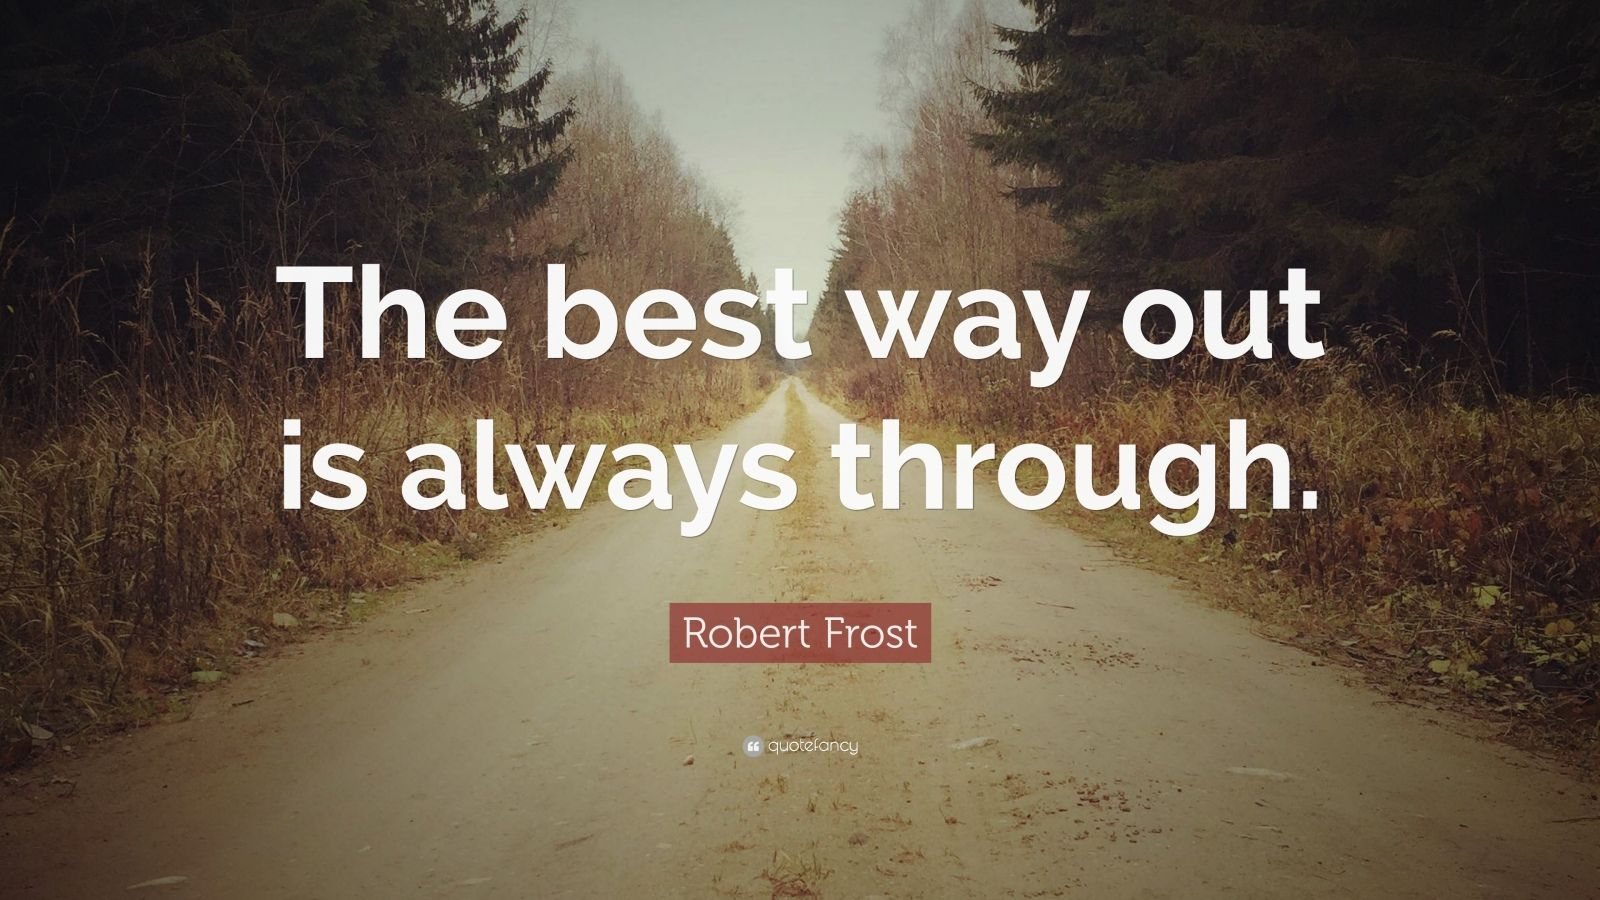 Persistence Quotes Wallpapers Robert Frost Quote The Best Way Out Is Always Through